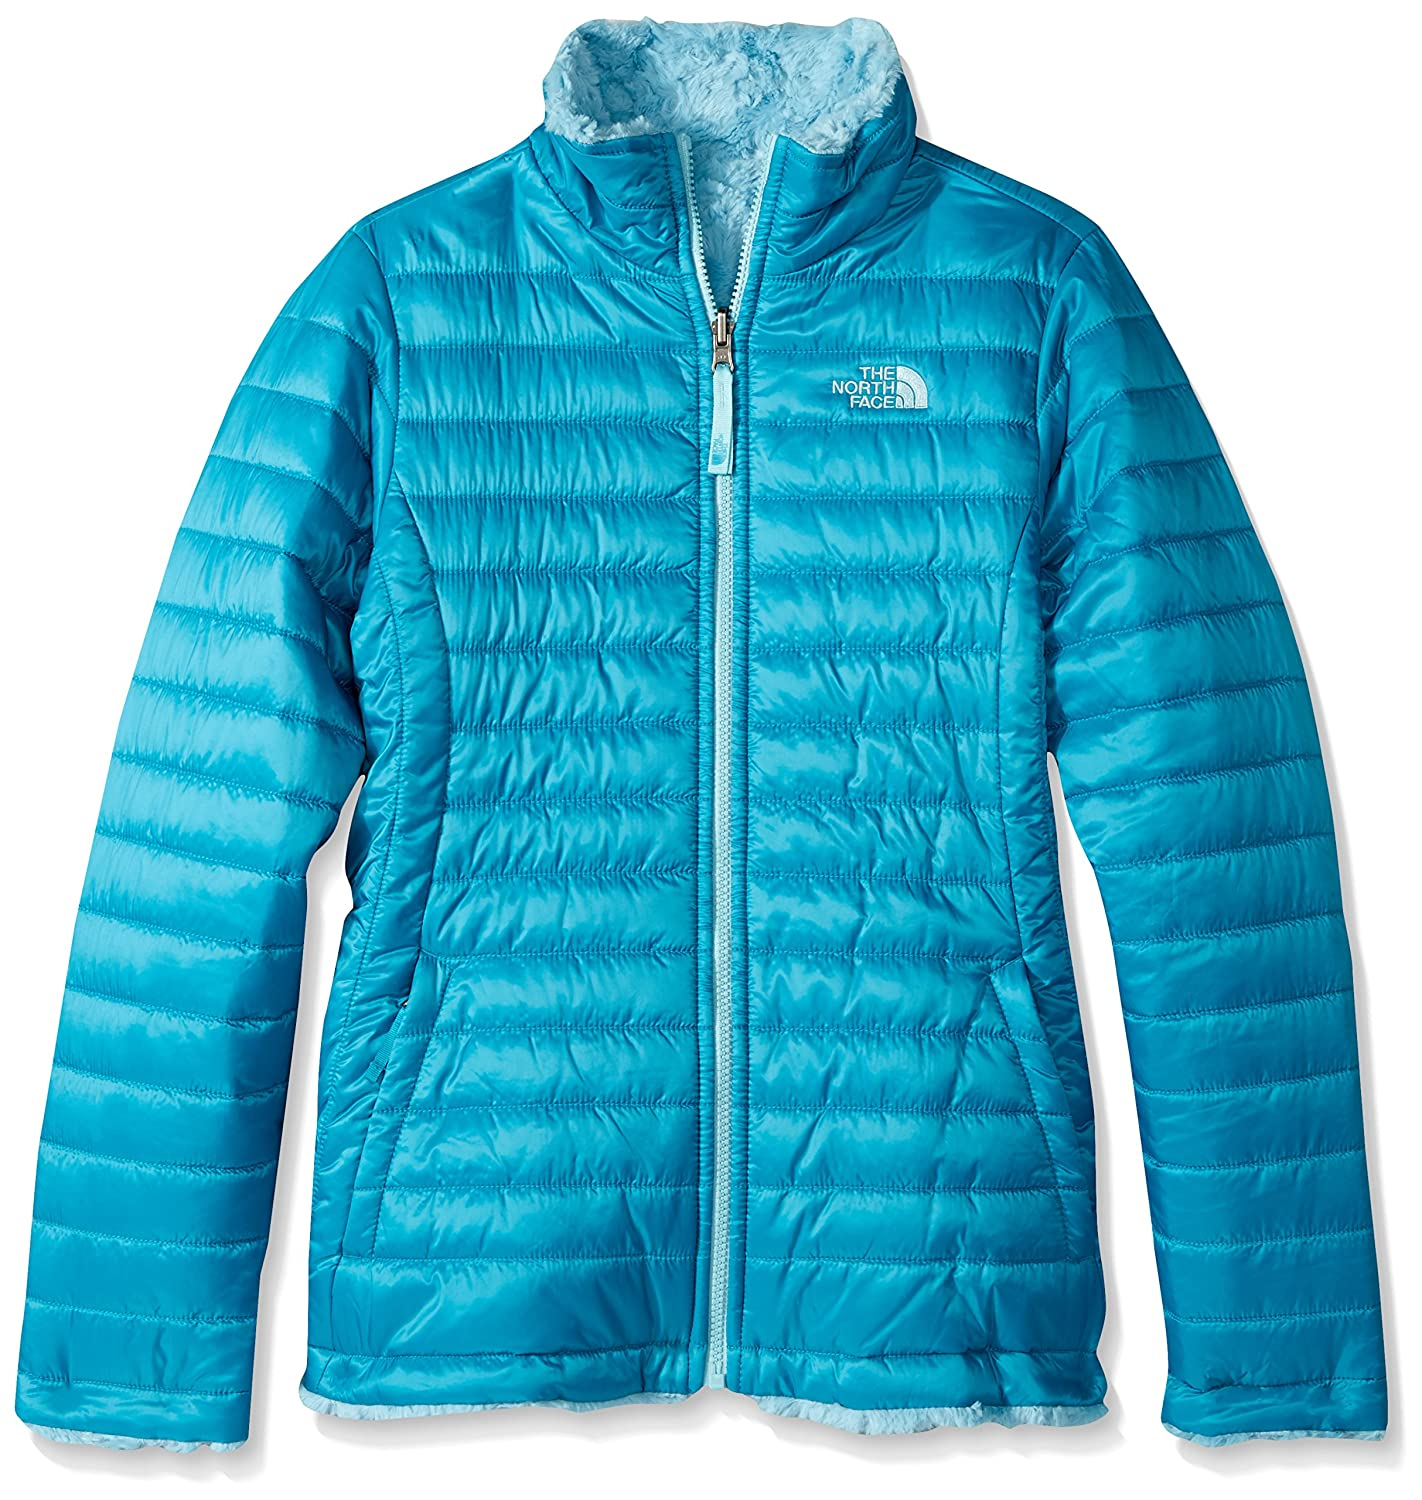 9861896b5d43 THE NORTH FACE Swirl Jacket for Girls